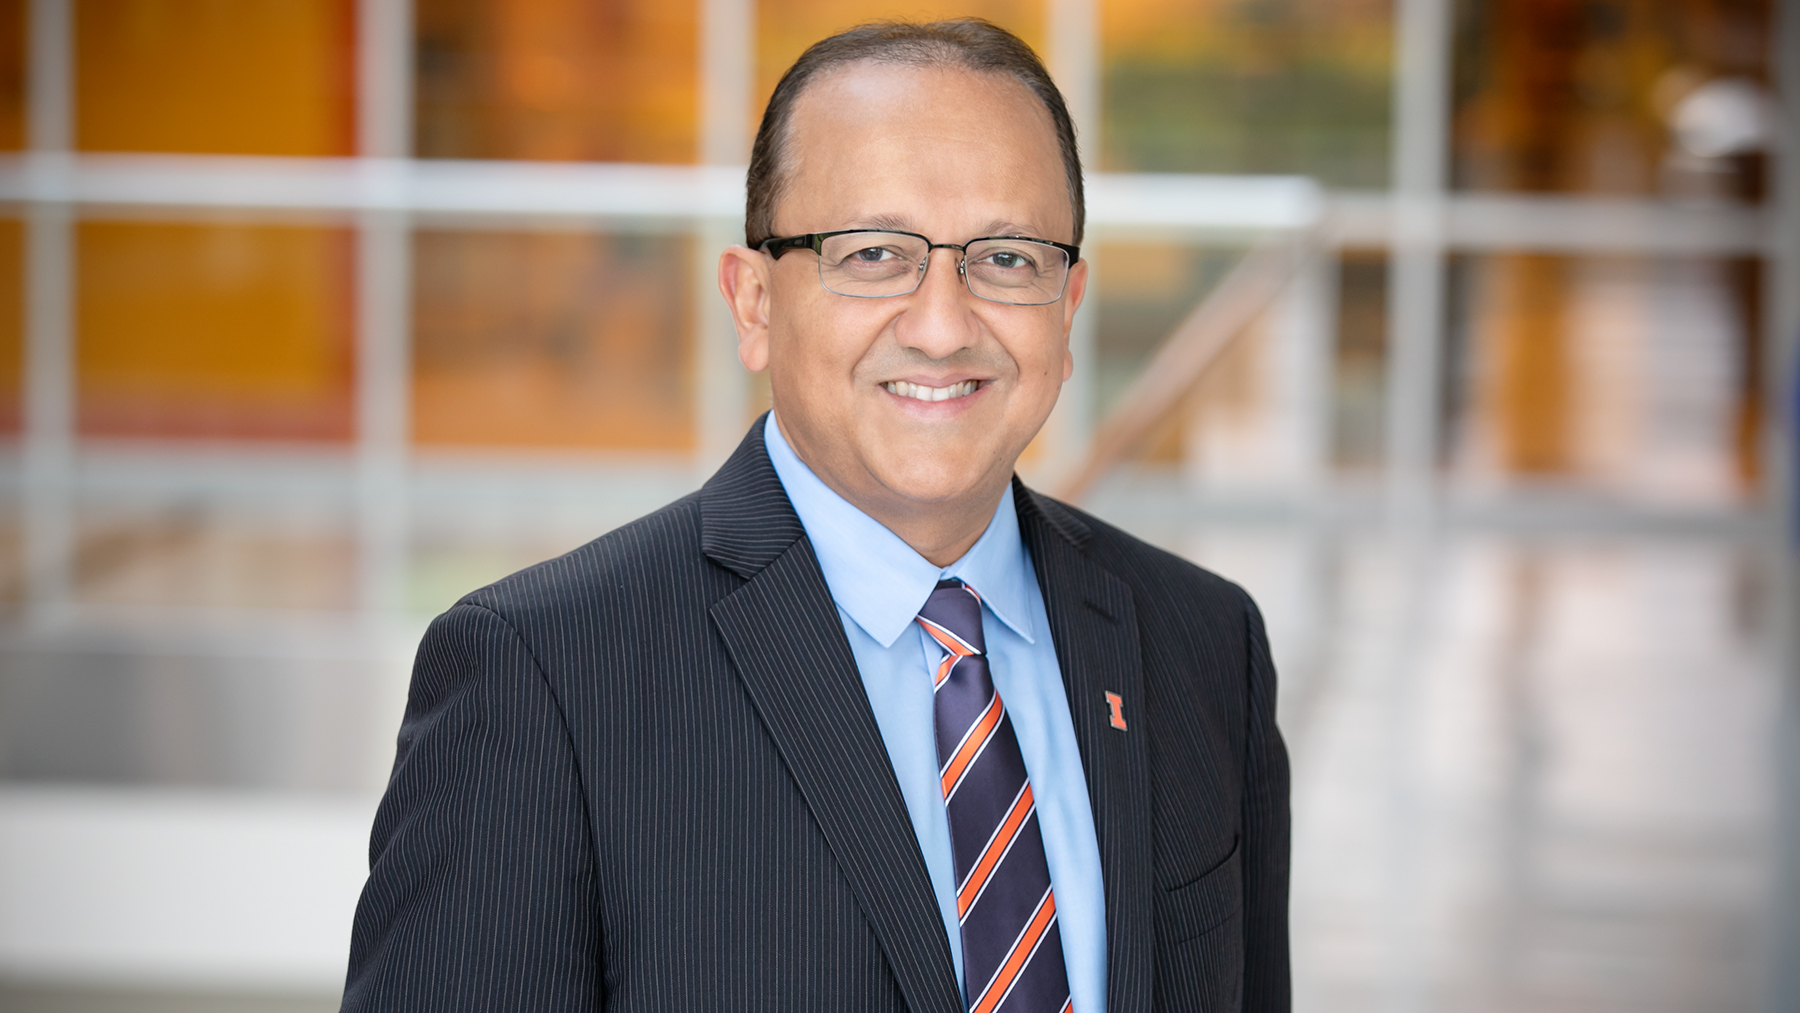 Rashid Bashir, Dean of the College of Engineering. Photo by L. B. Stauffer